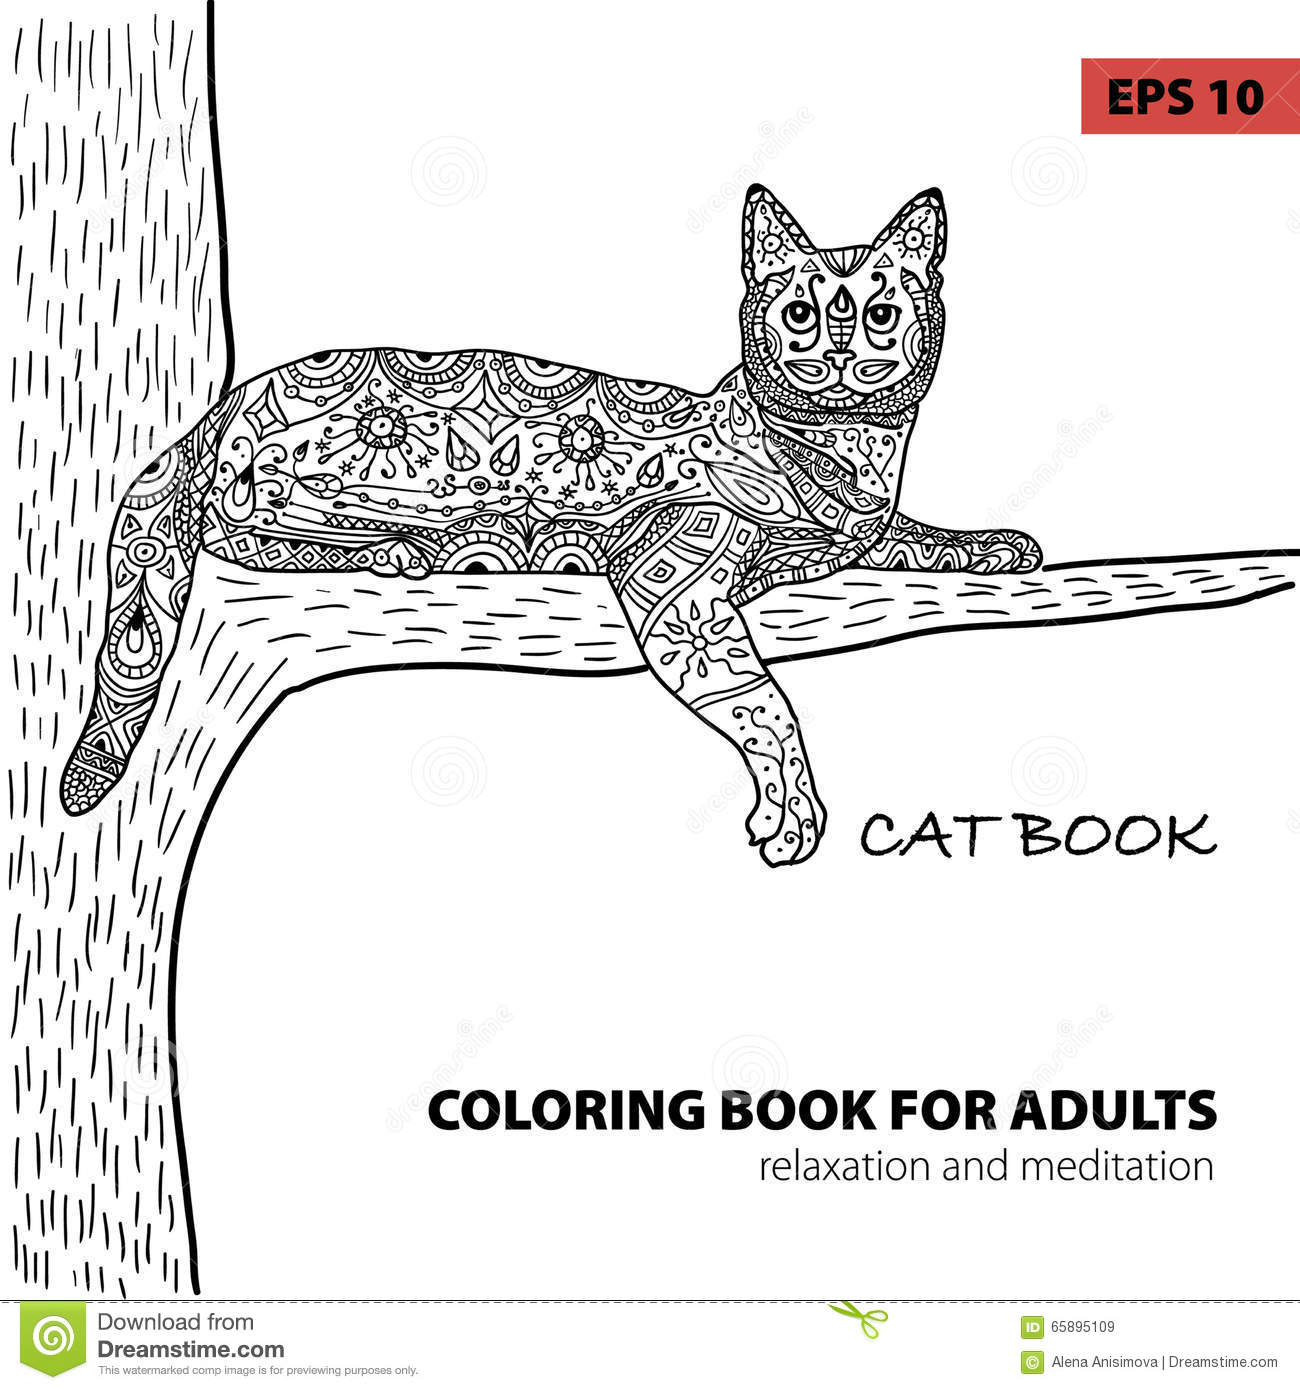 coloring book adults zentangle cat book ink pen black white background intricate pattern doodle hand drawn illustration 65895109